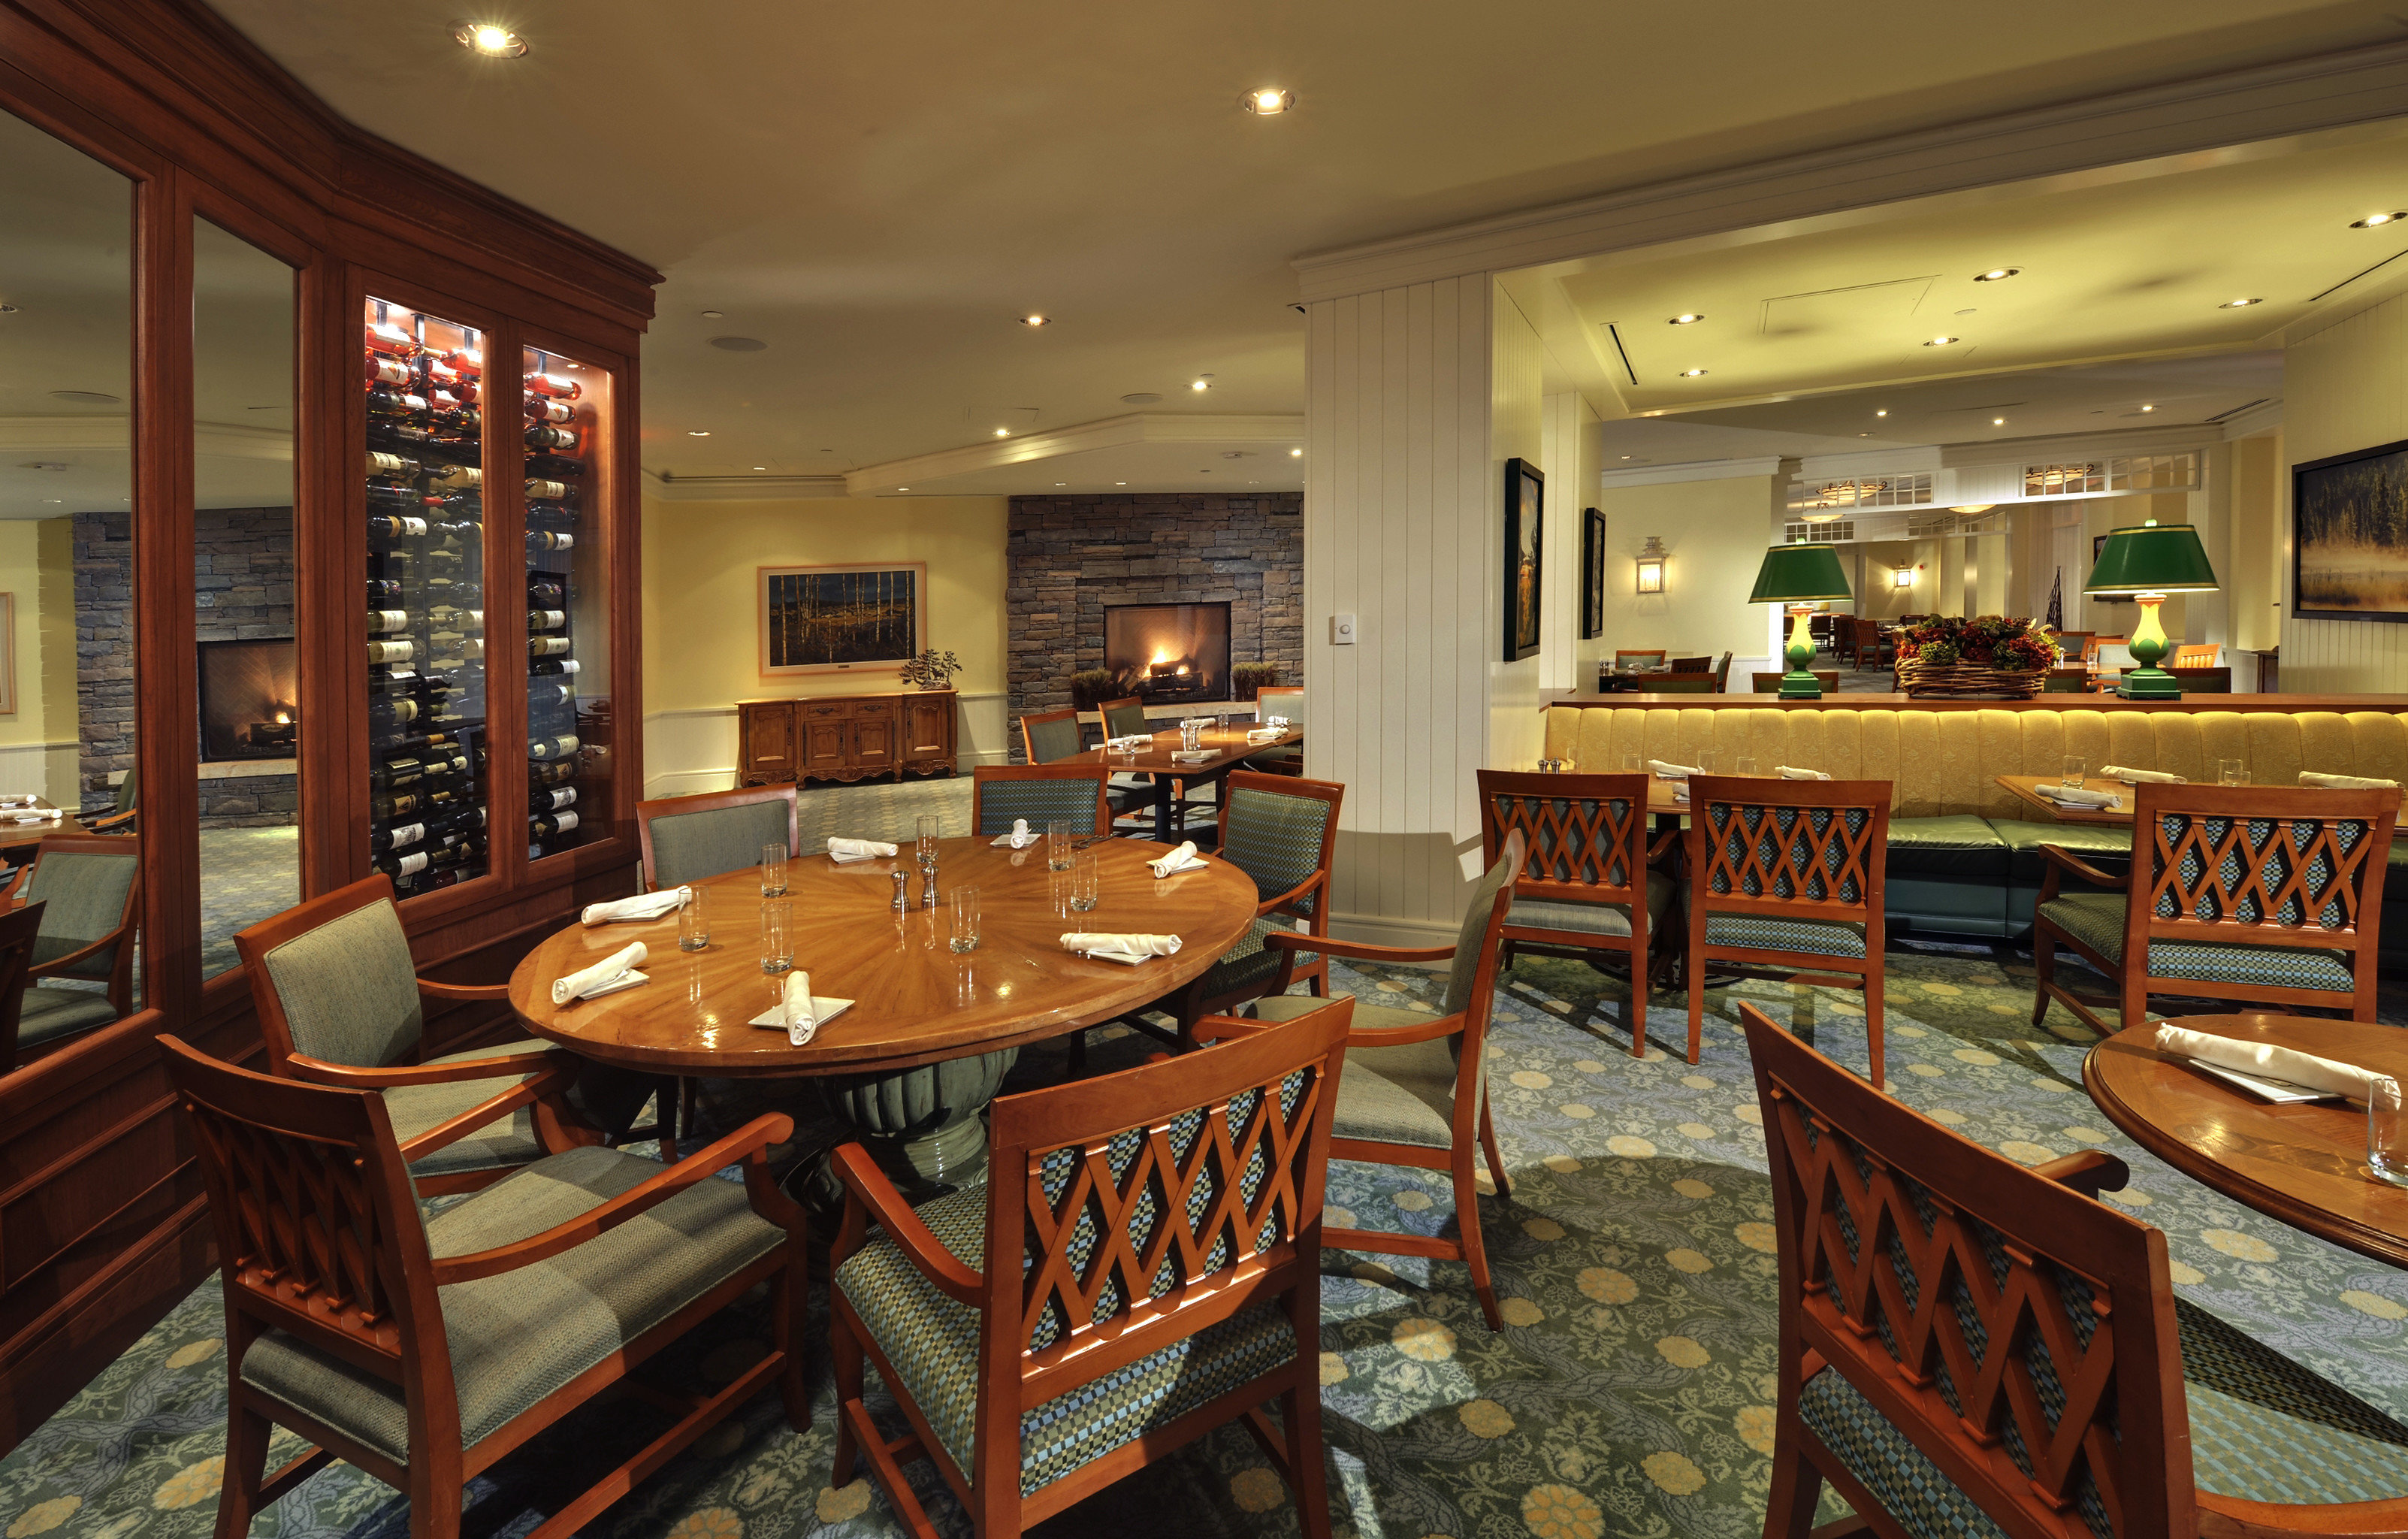 Classic Dining Drink Eat Fireplace Resort chair restaurant recreation room café Bar function hall